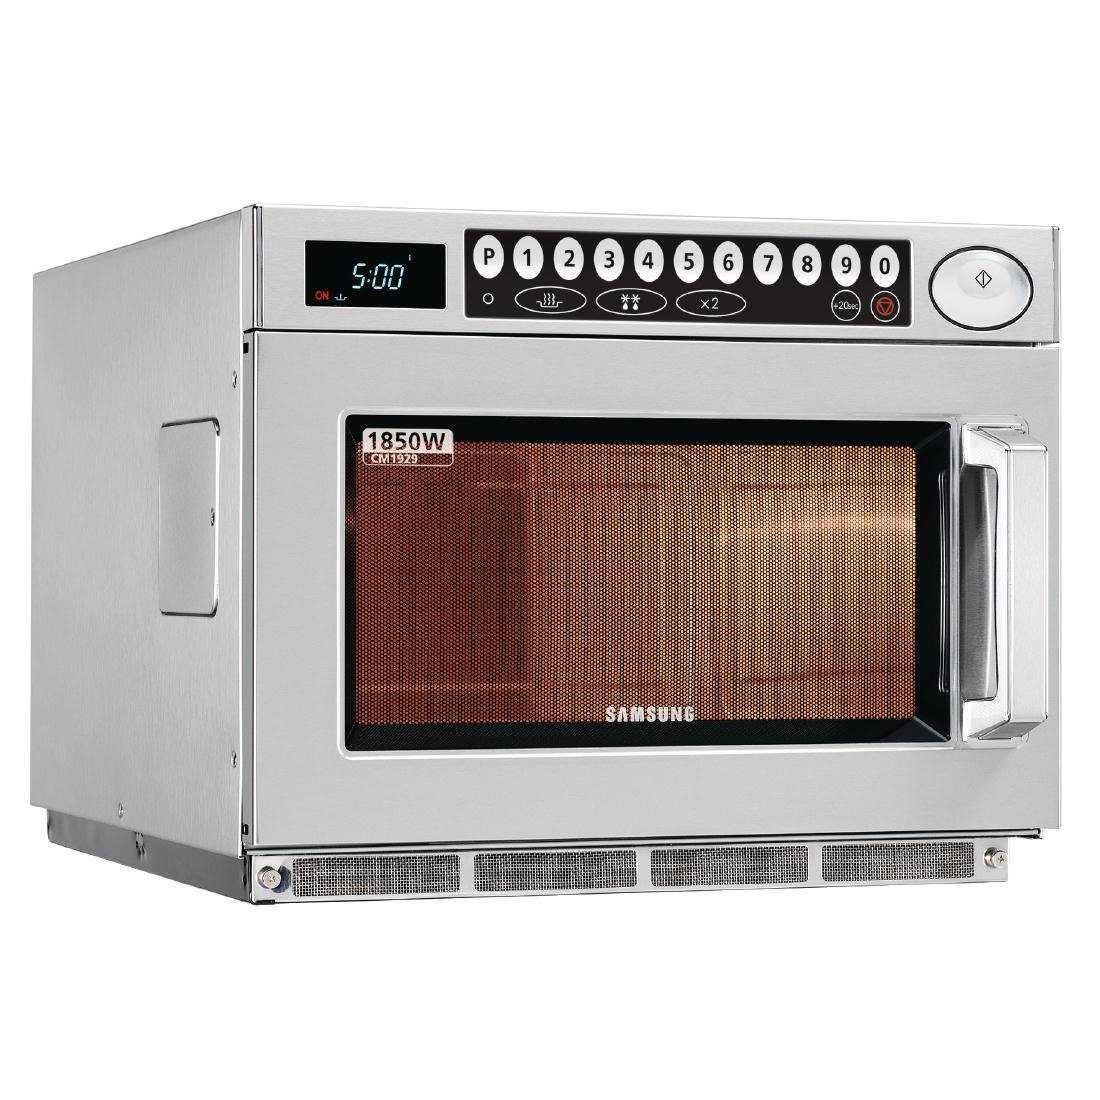 Programmable 1850w Microwave Oven Powerful Commercial